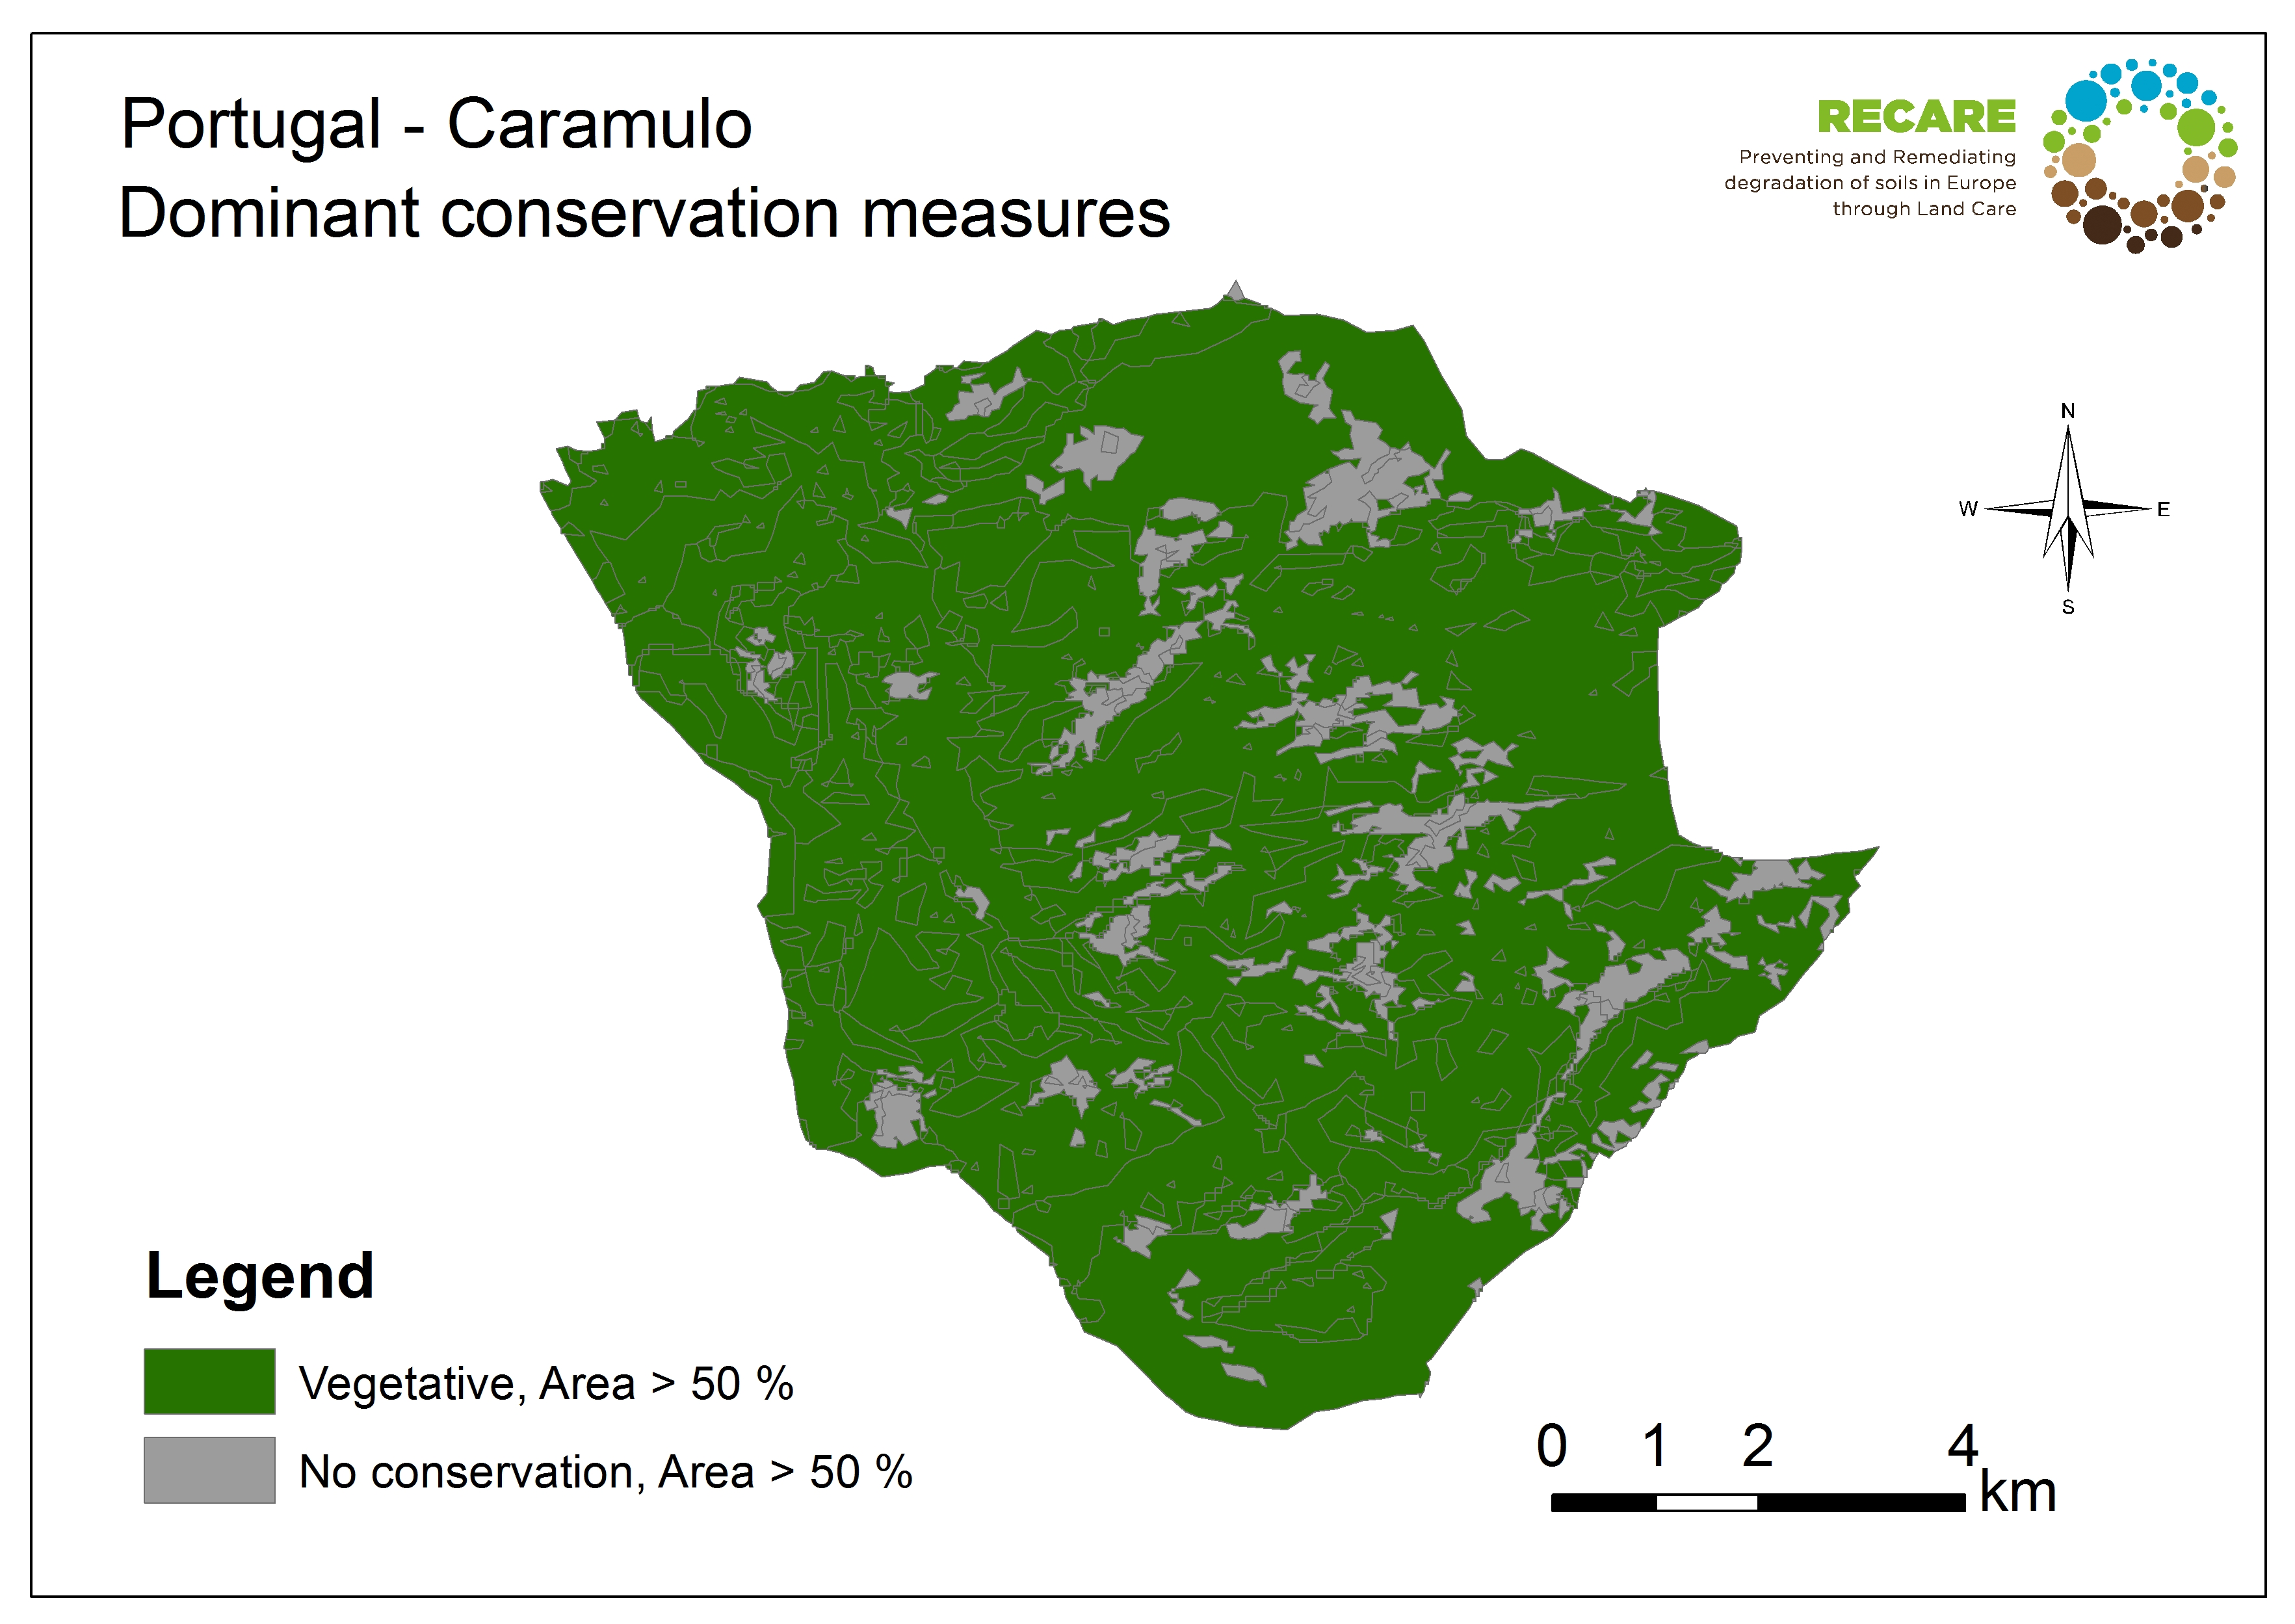 Portugal Caramulo dominant conservation measures